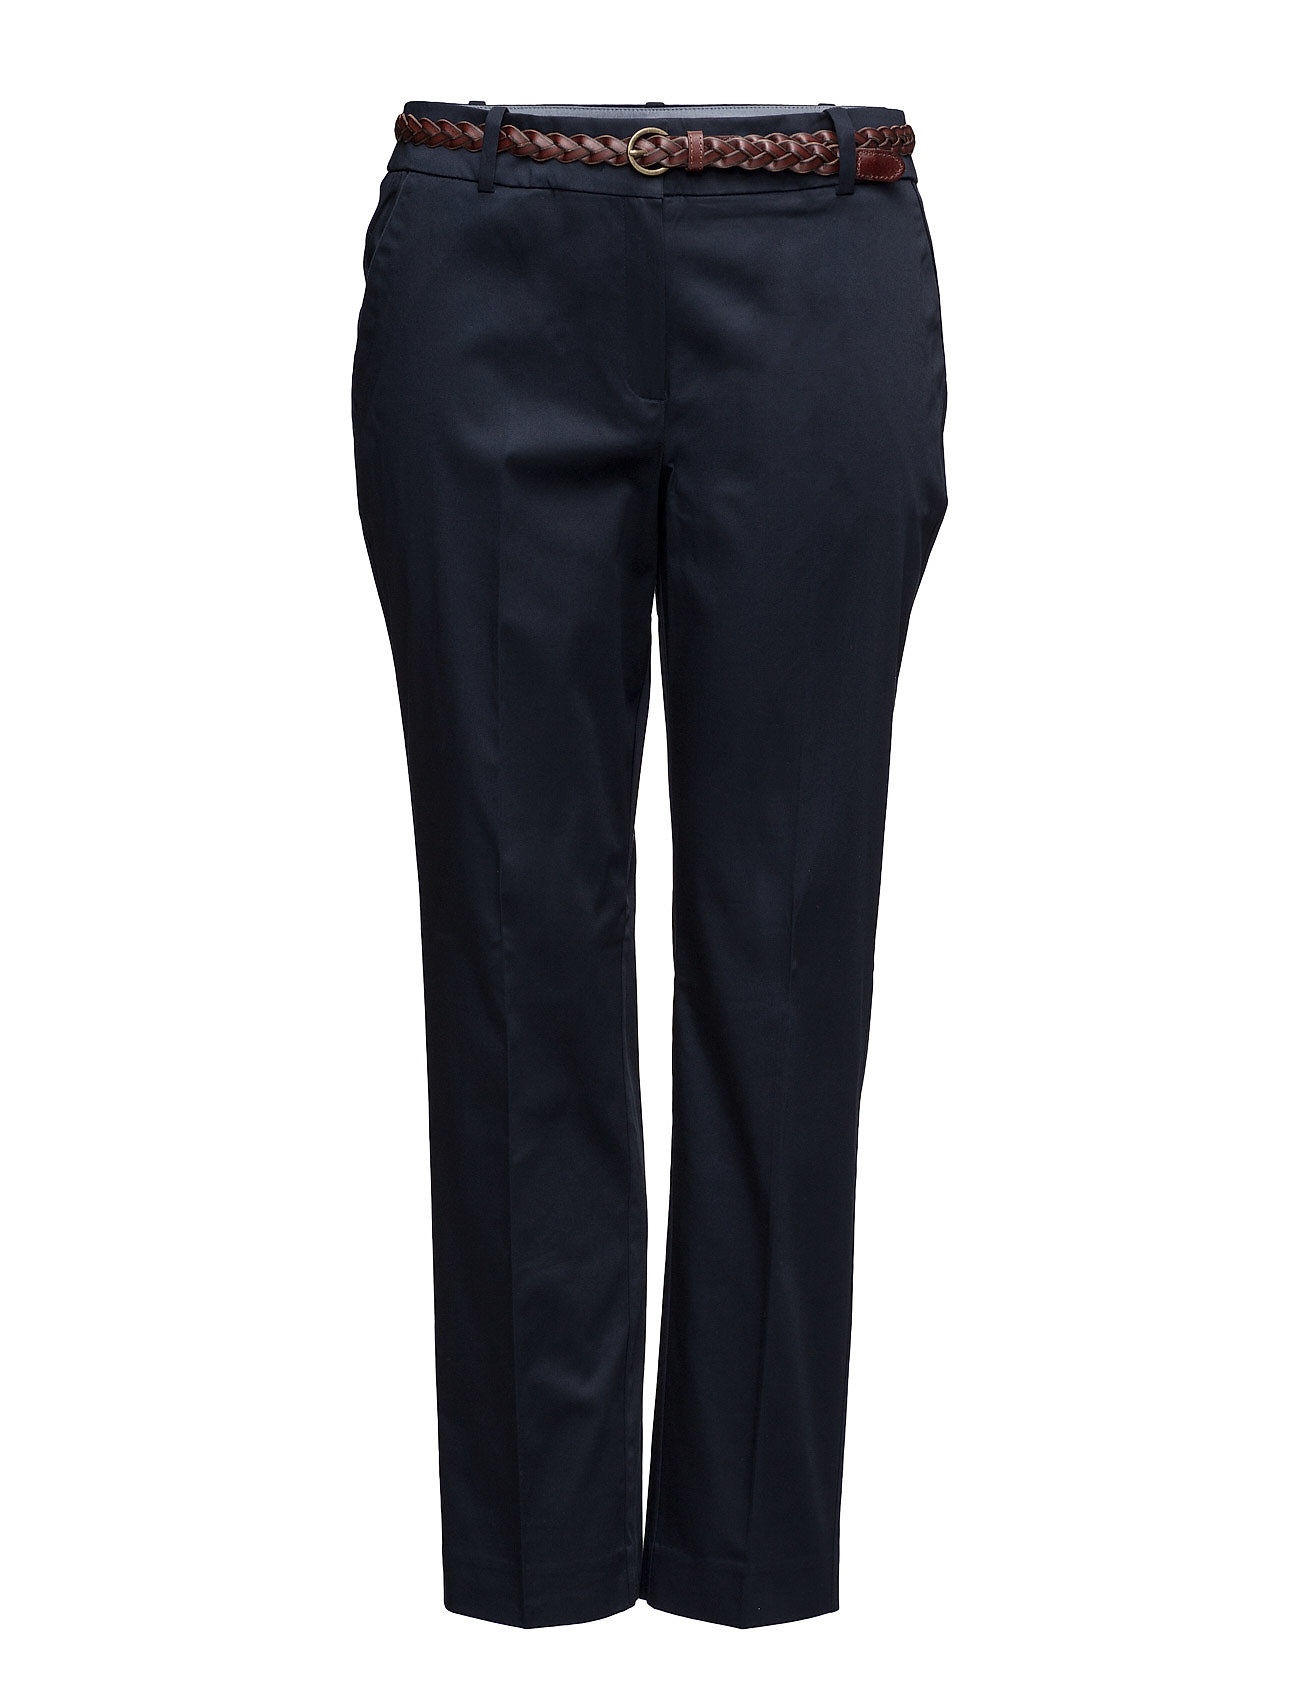 Belt Cotton-Blend Trousers Violeta by Mango Bukser til Damer i Navy blå